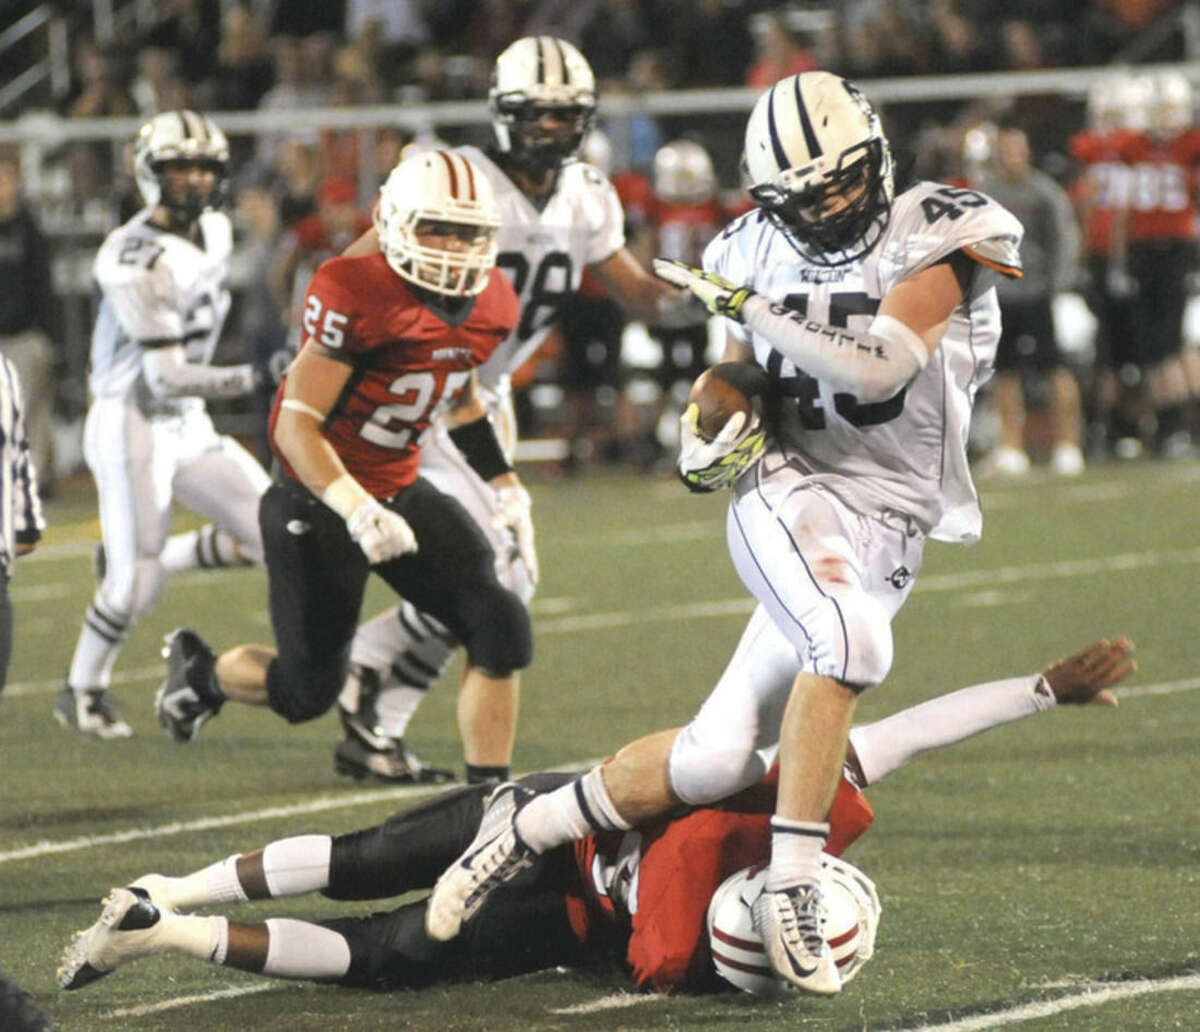 Hour photo/John Nash Wilton's T.J. Savvaides runs over a Branford tackler en route to a long gain during Friday's football game in Branford. Wilton won 34-7.